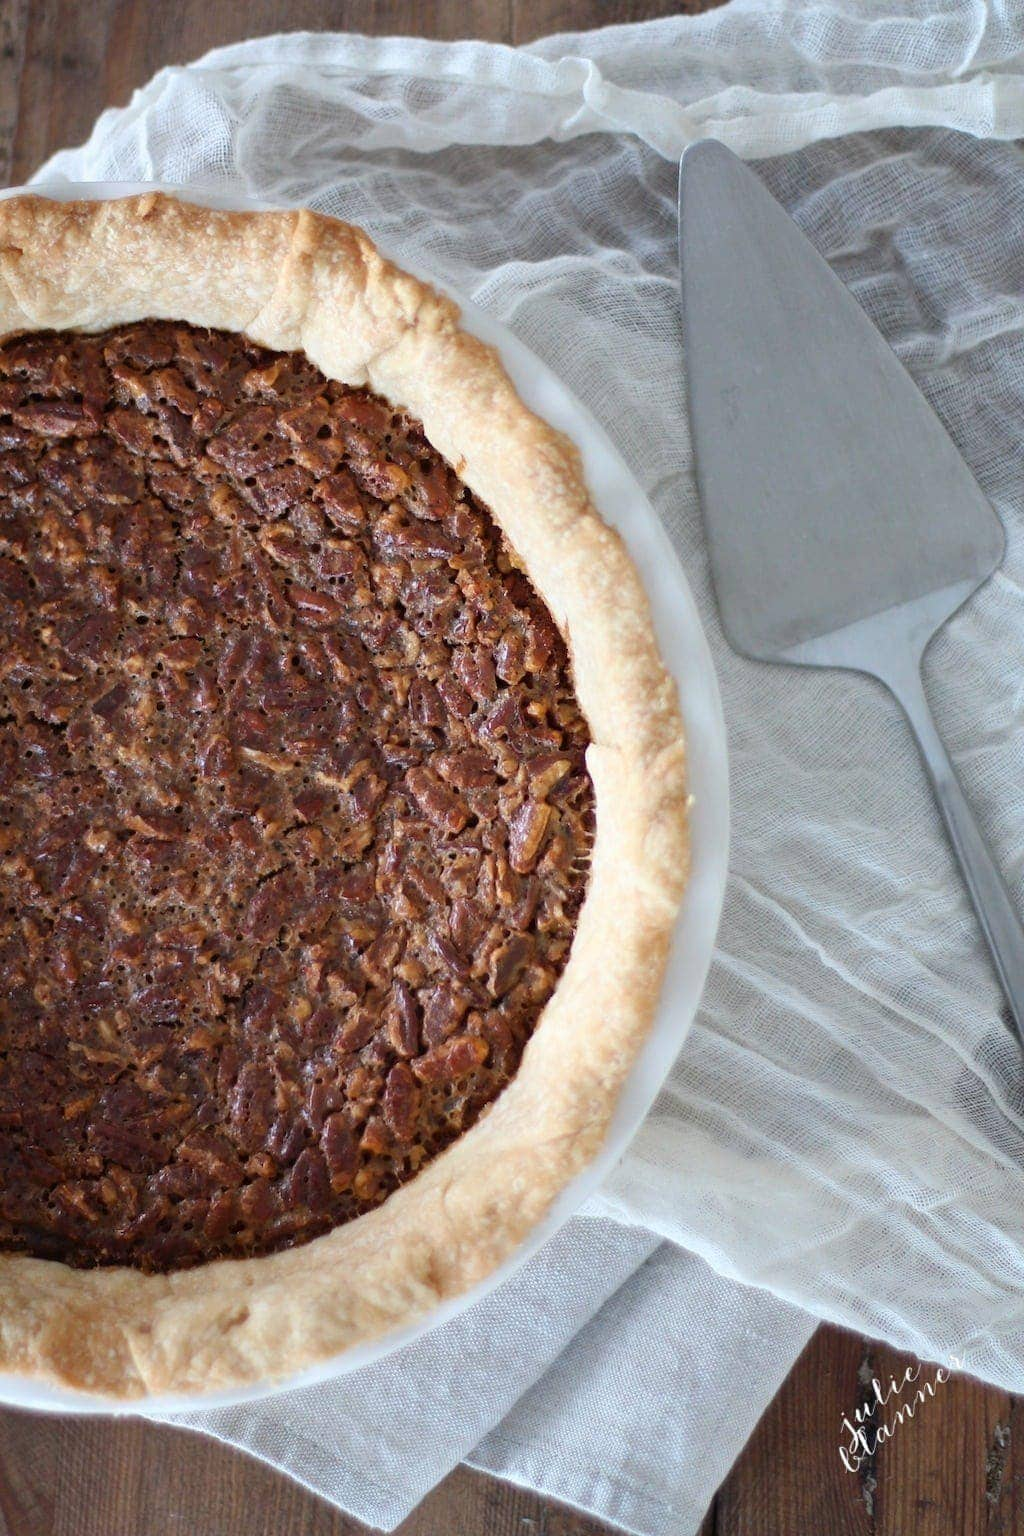 The BEST Caramel Pecan Pie recipe